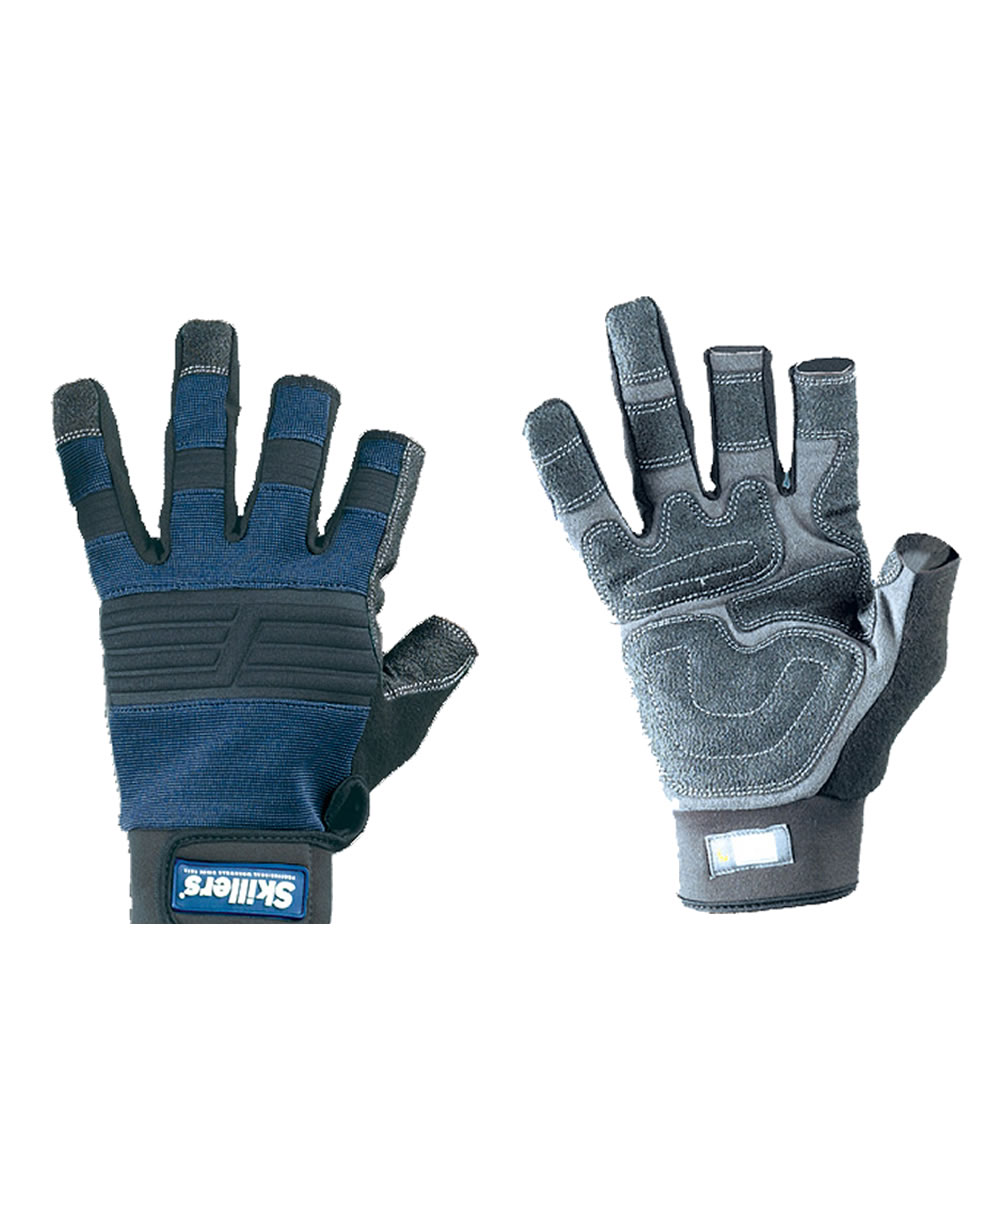 Skillers Craftsman Cut Fingers Gloves